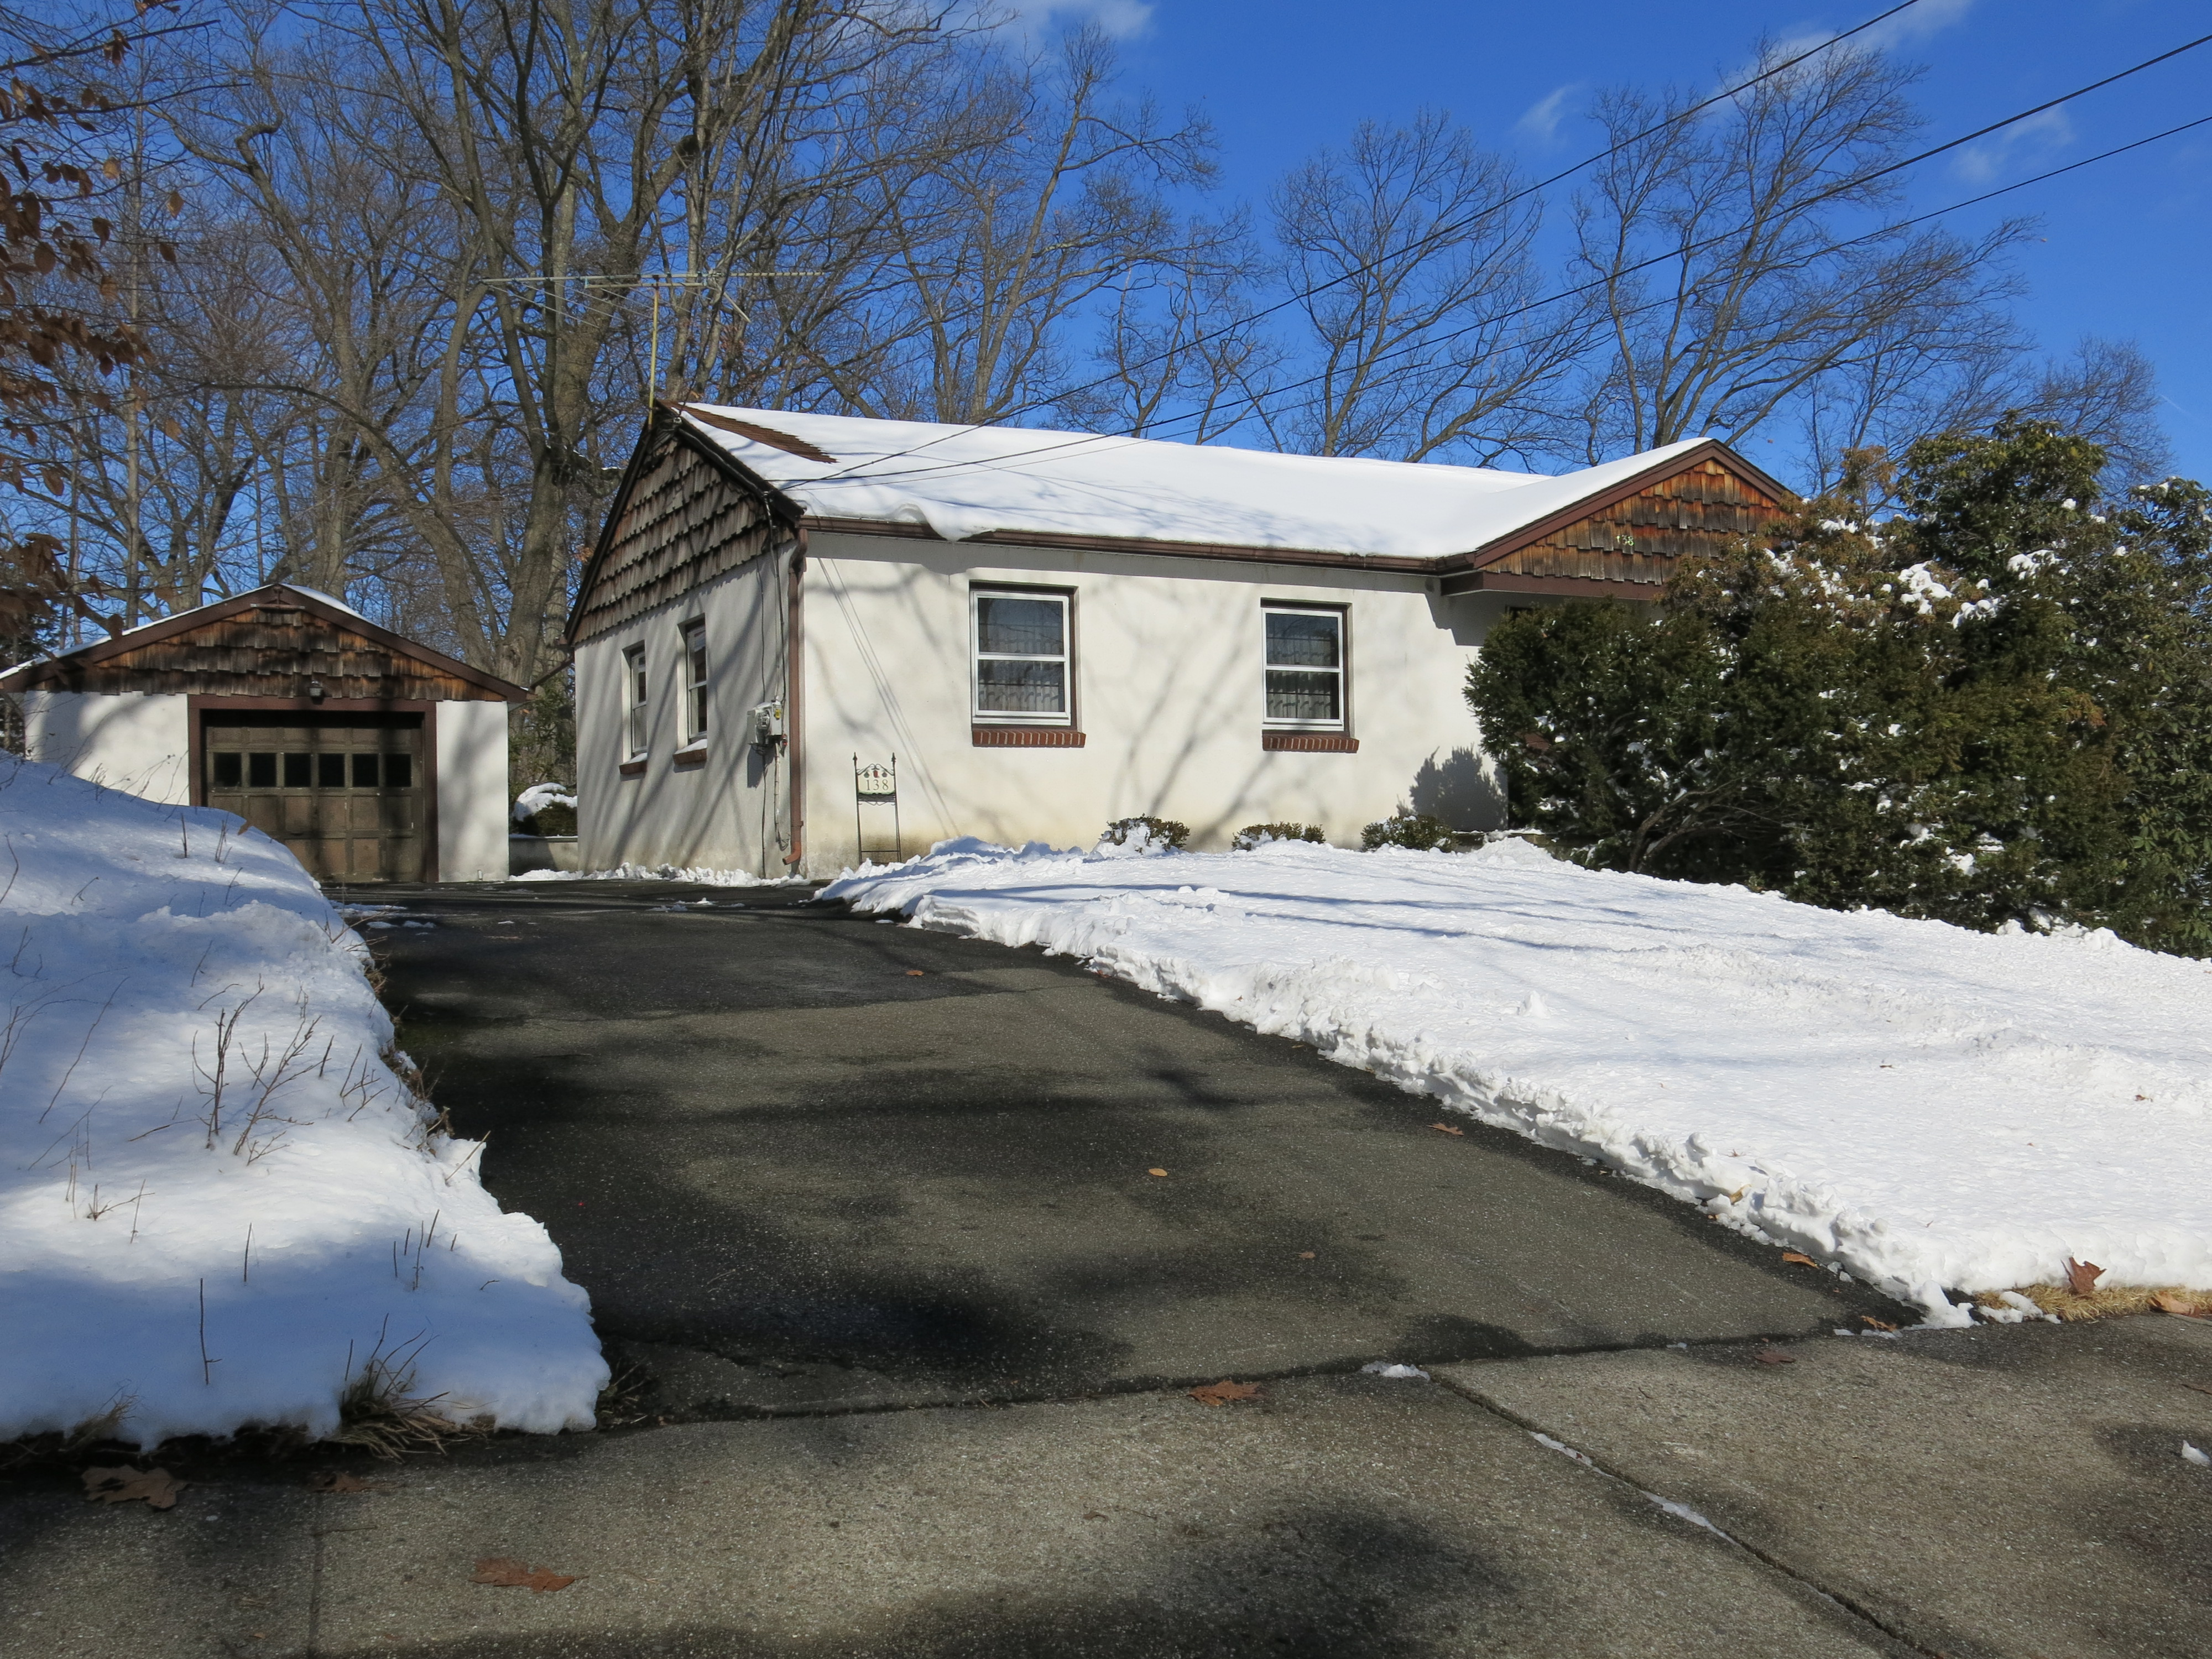 3br 1 Bath Home For Sale In Midland Park Nj Open House 2 19 17